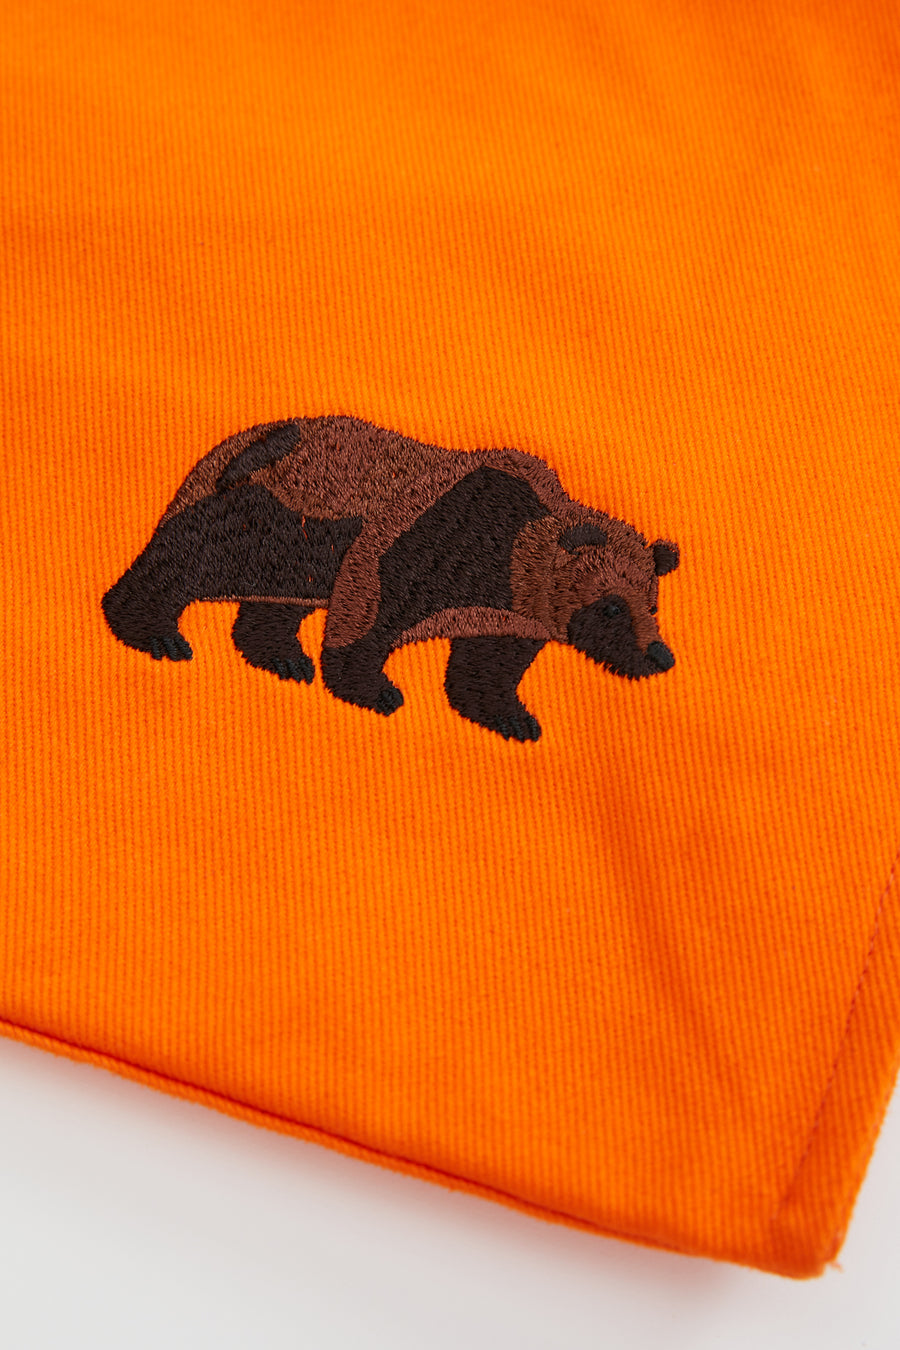 Official WWF Licensed Bear Embroidery Eco-friendly Orange Tote Bag